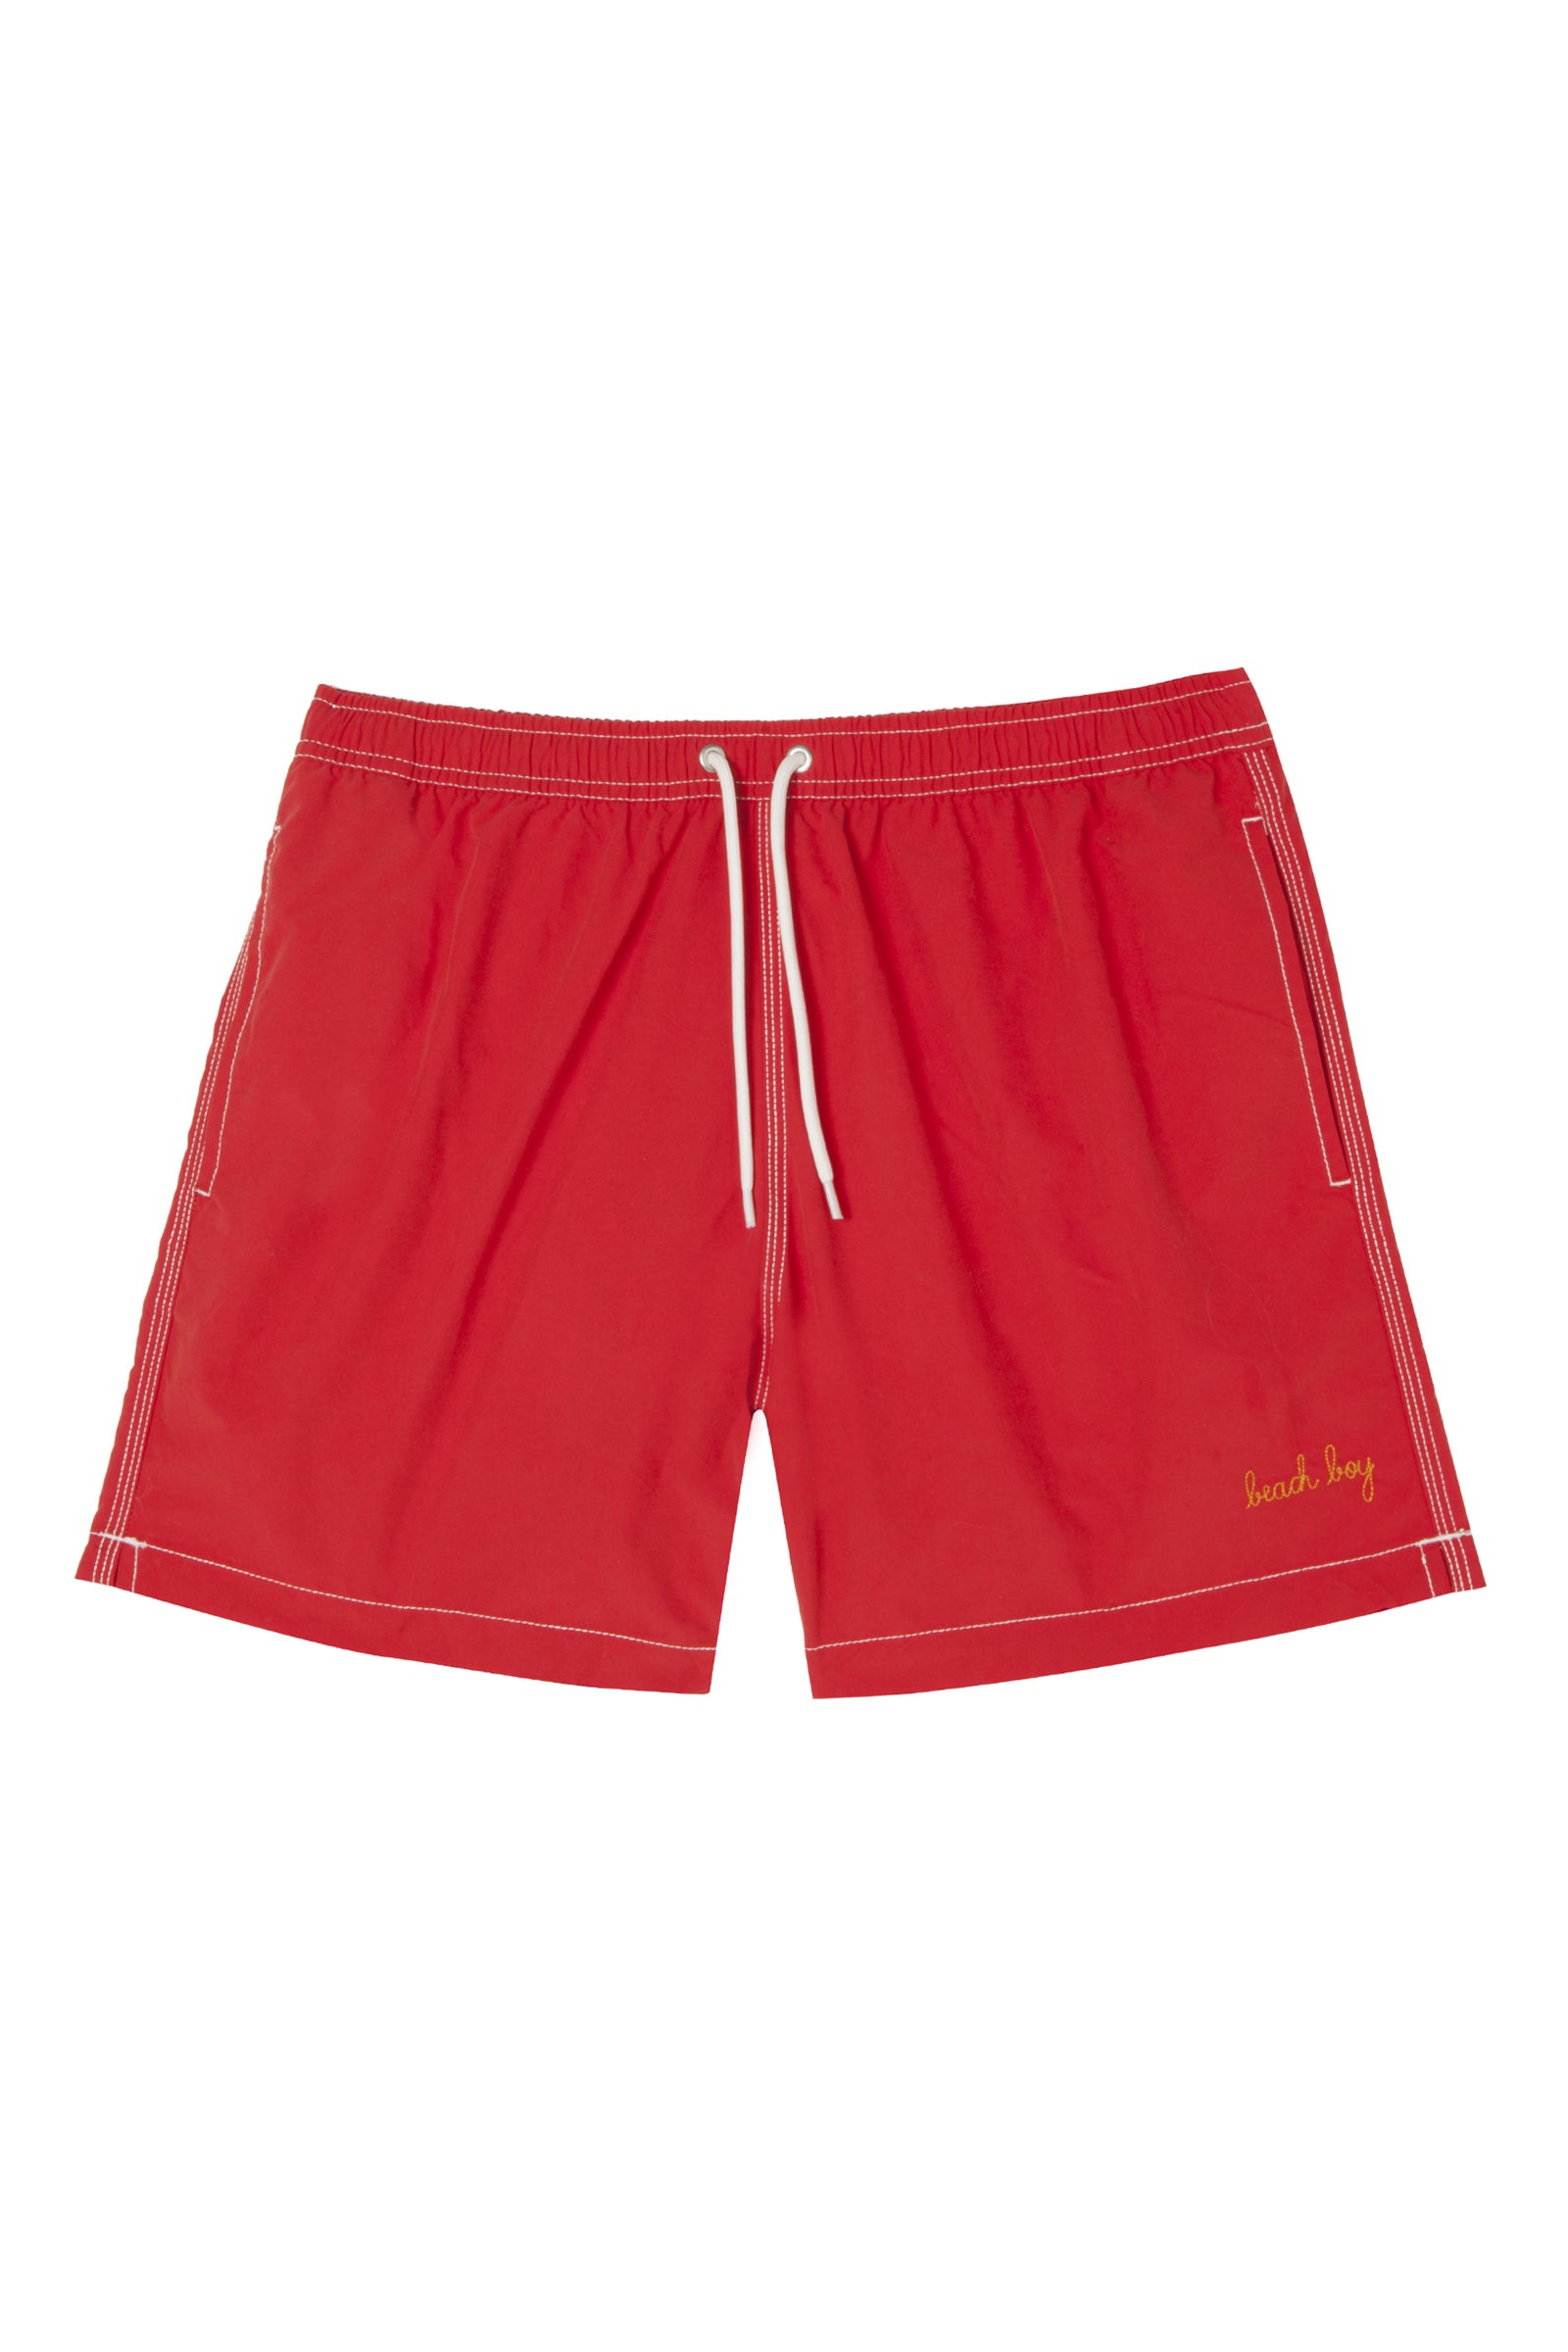 Maison Labiche De Bain Beach Boy Swim Shorts